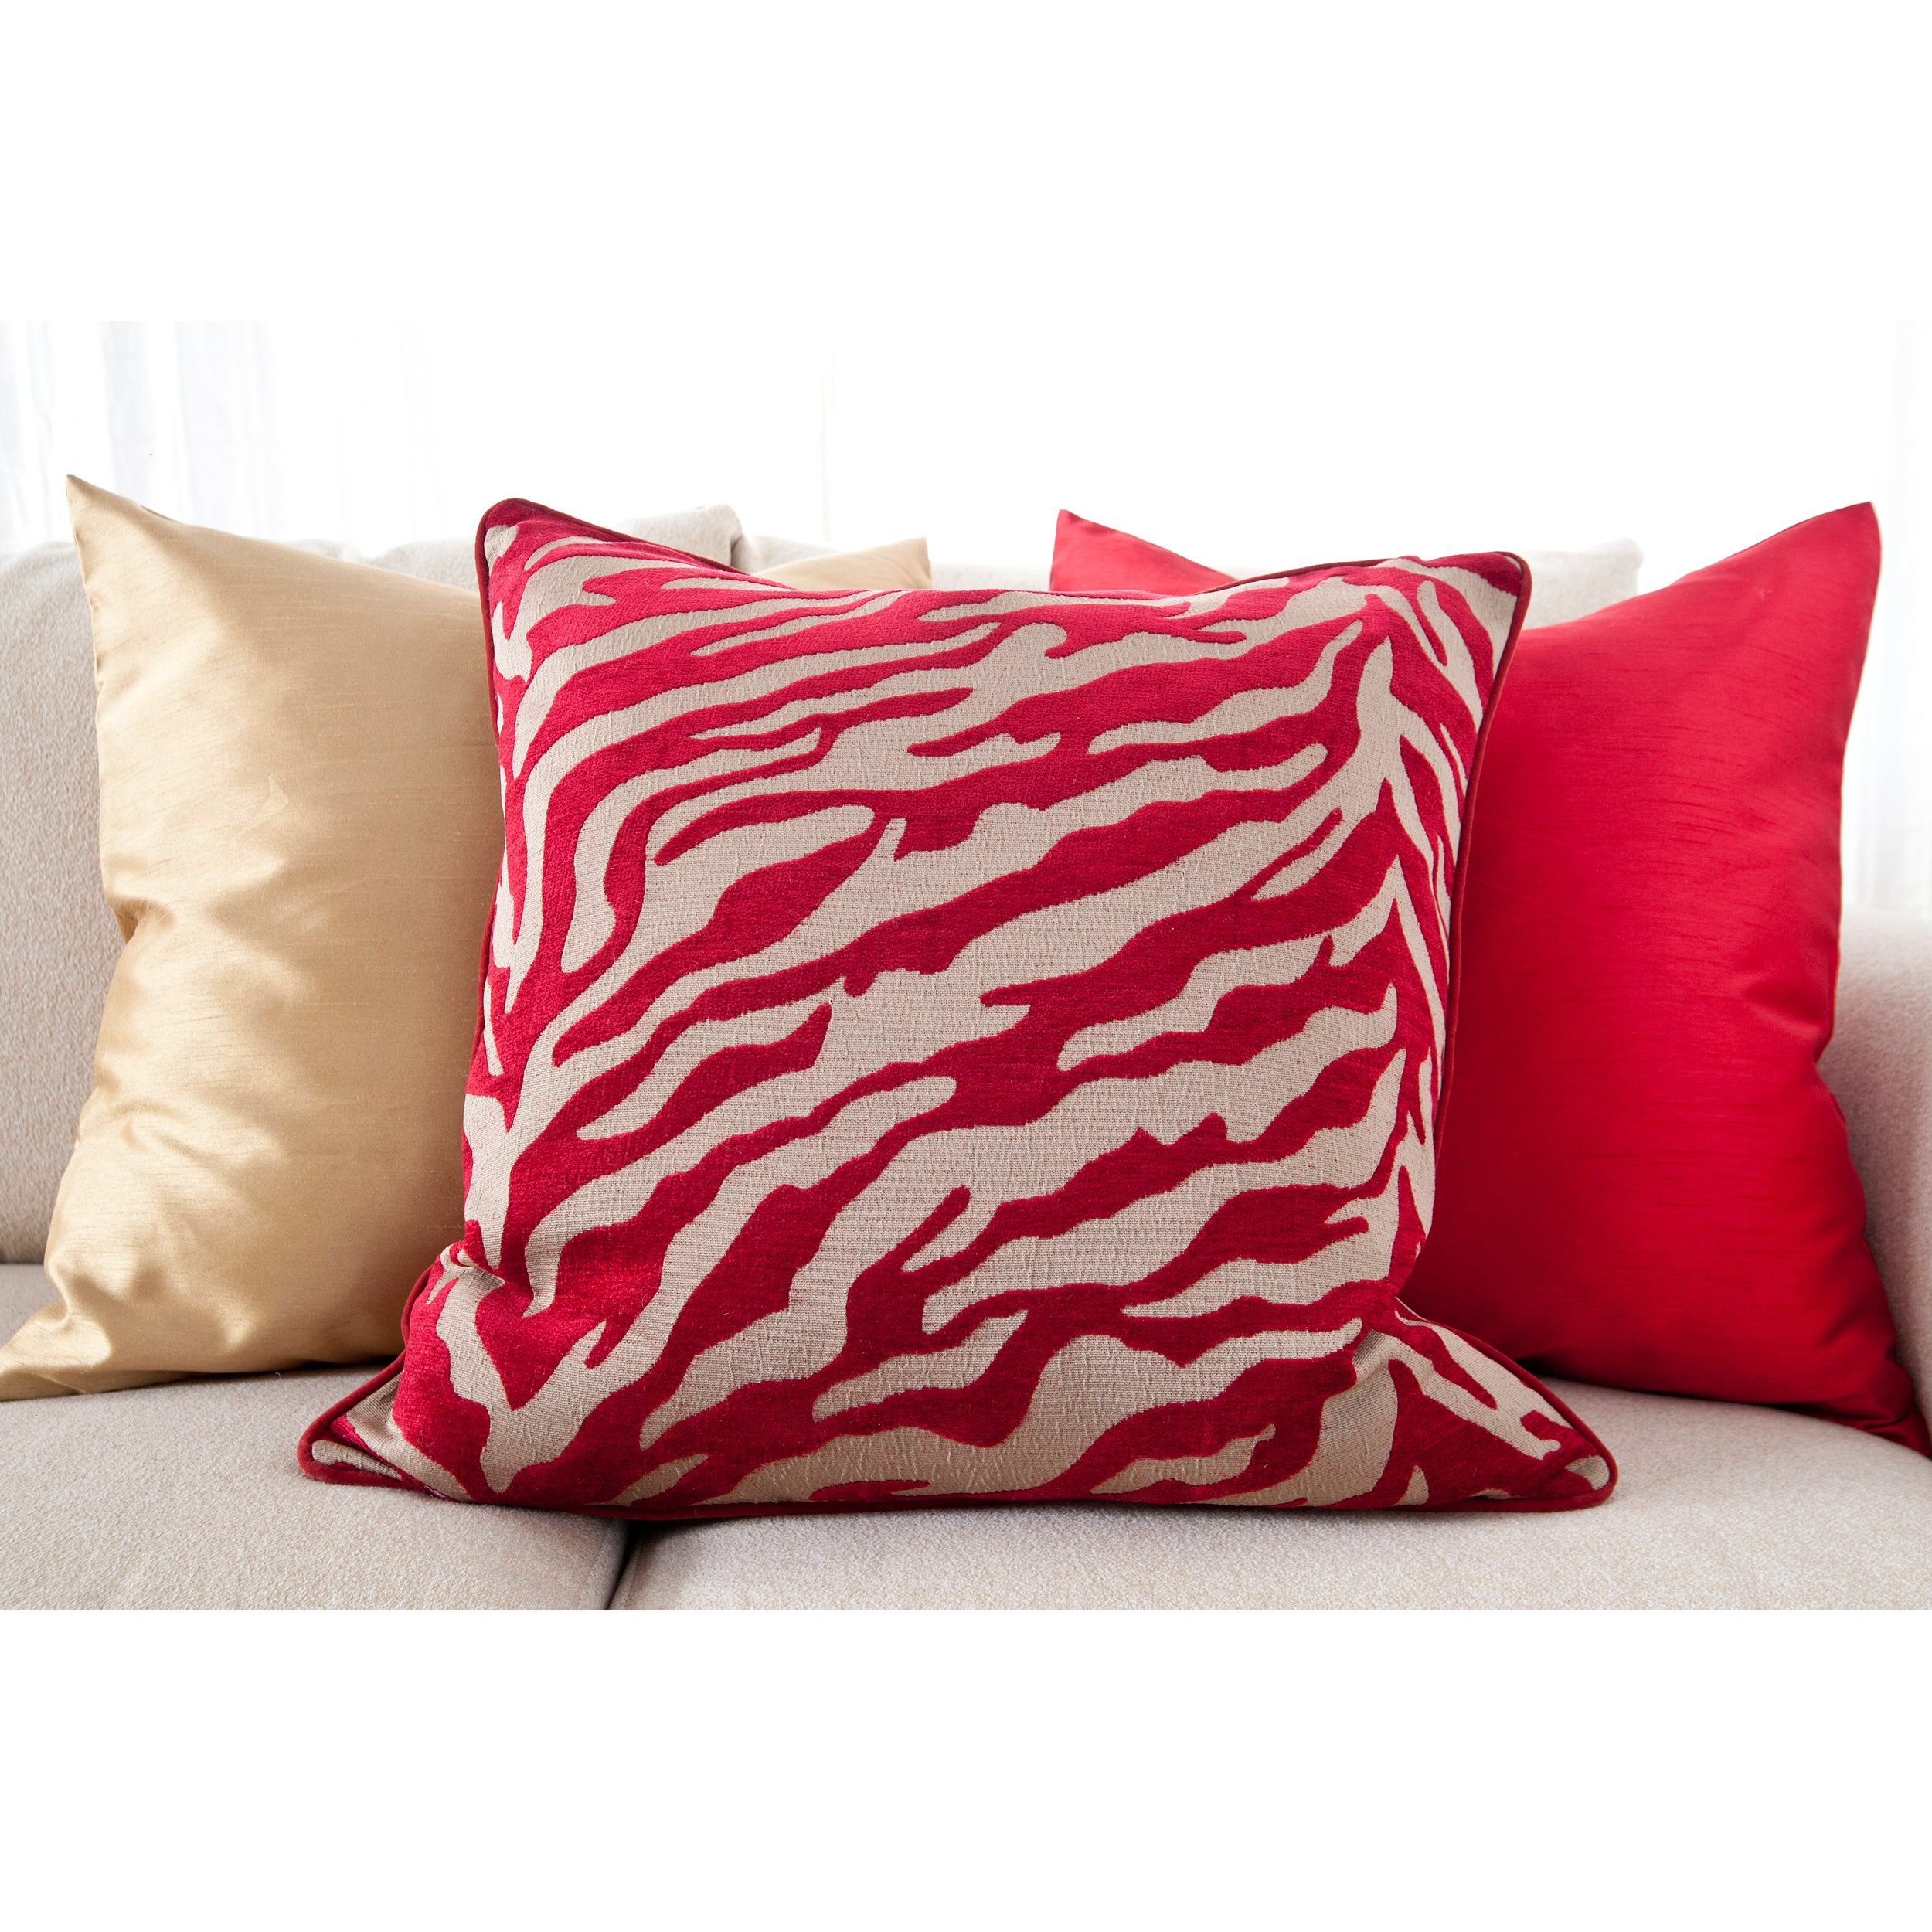 Radiant Red Decorative 18-inch Down Pillows (Set of 3)